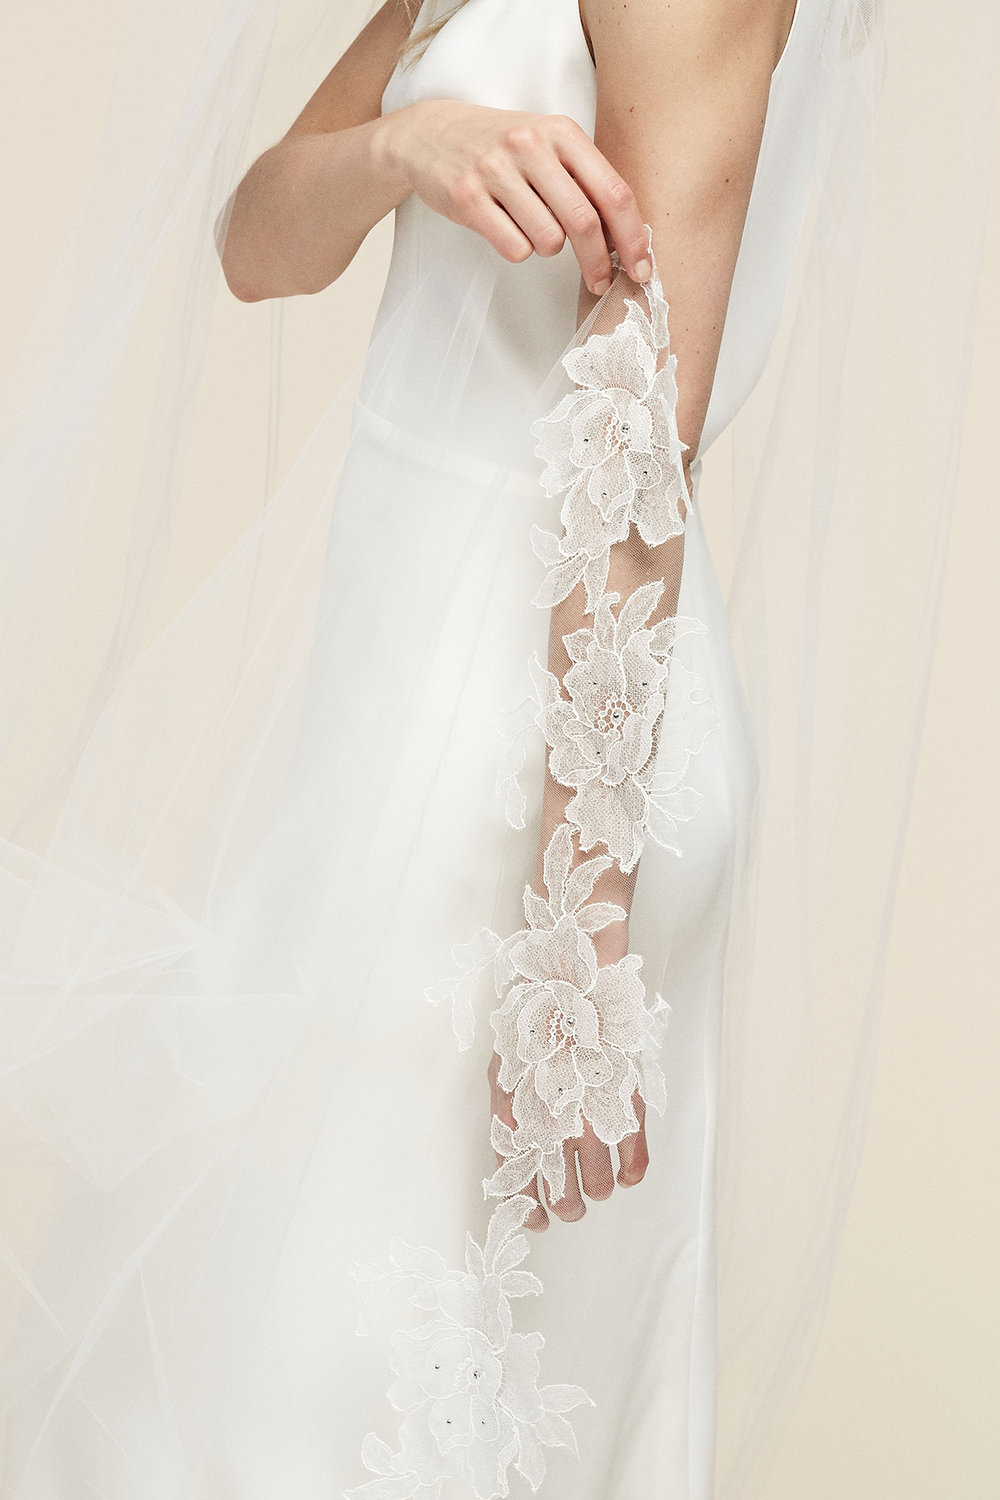 Jessa Veil   Details: Bottom edge of veil bordered with soft Chantilly lace accented by scattered crystals  Cathedral $1,358 - Fingertip $908 - Floor $1,188